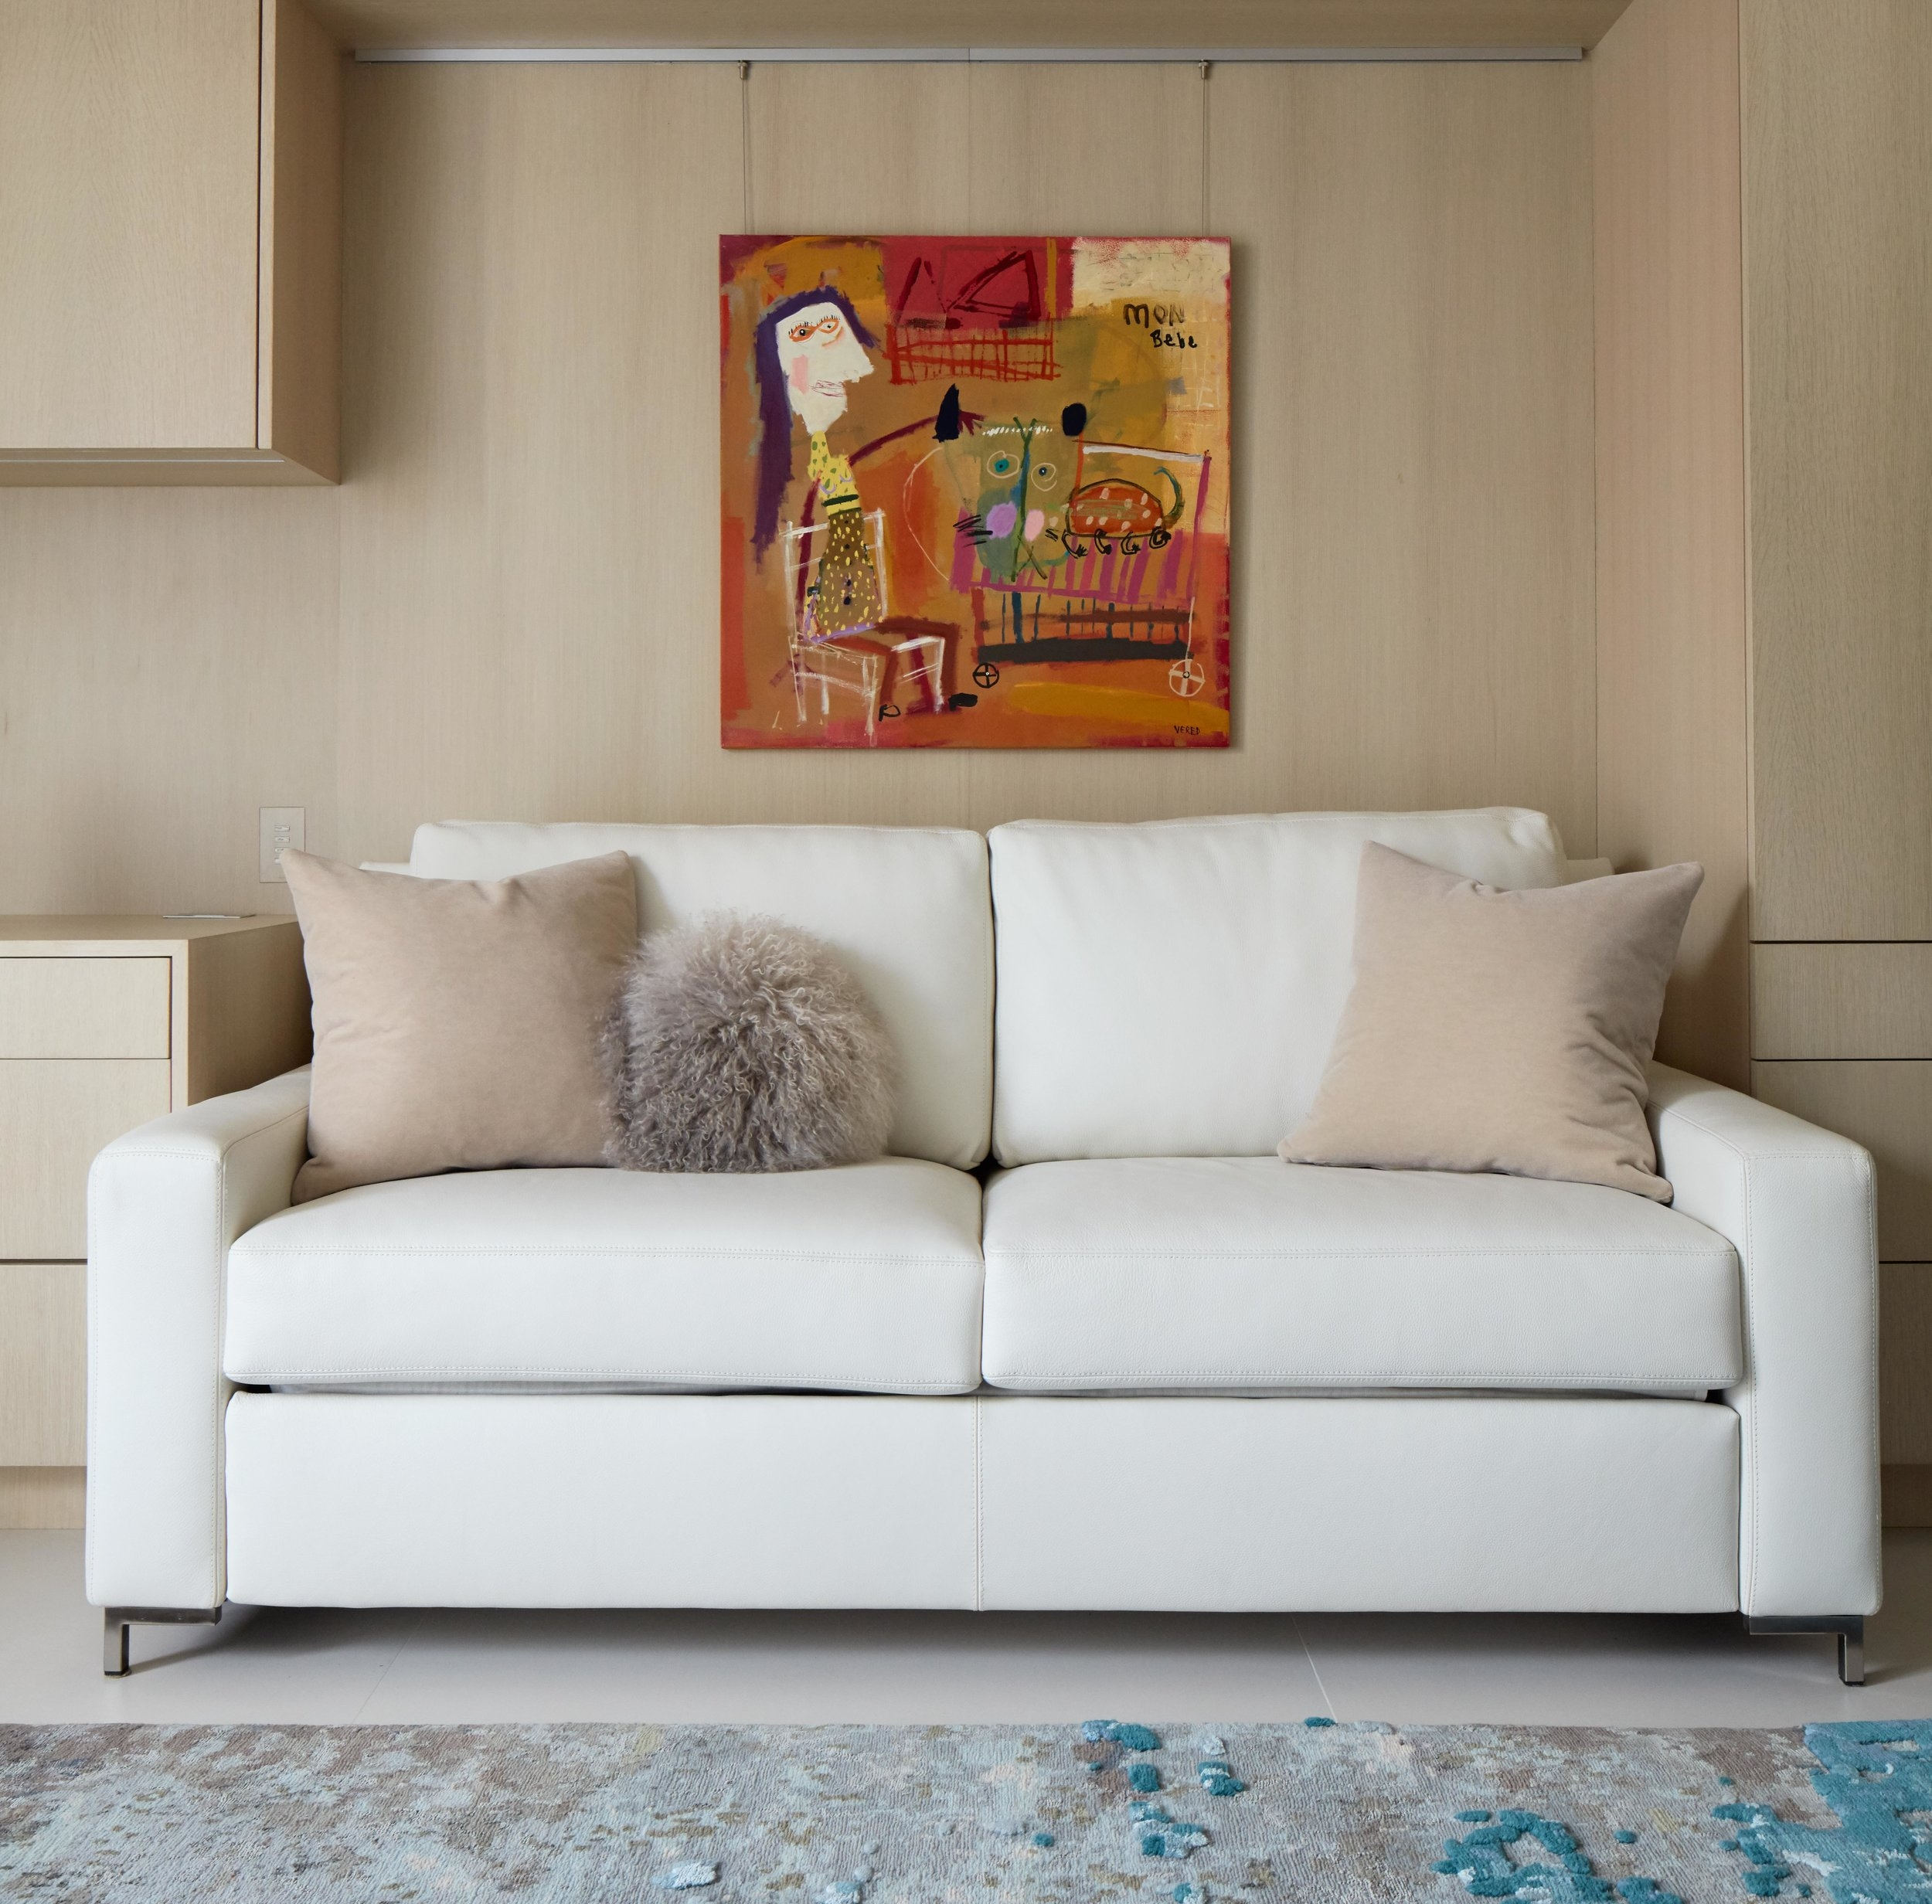 A painting by Vered Gersztenkorn hangs above a pullout sofa in the guest room